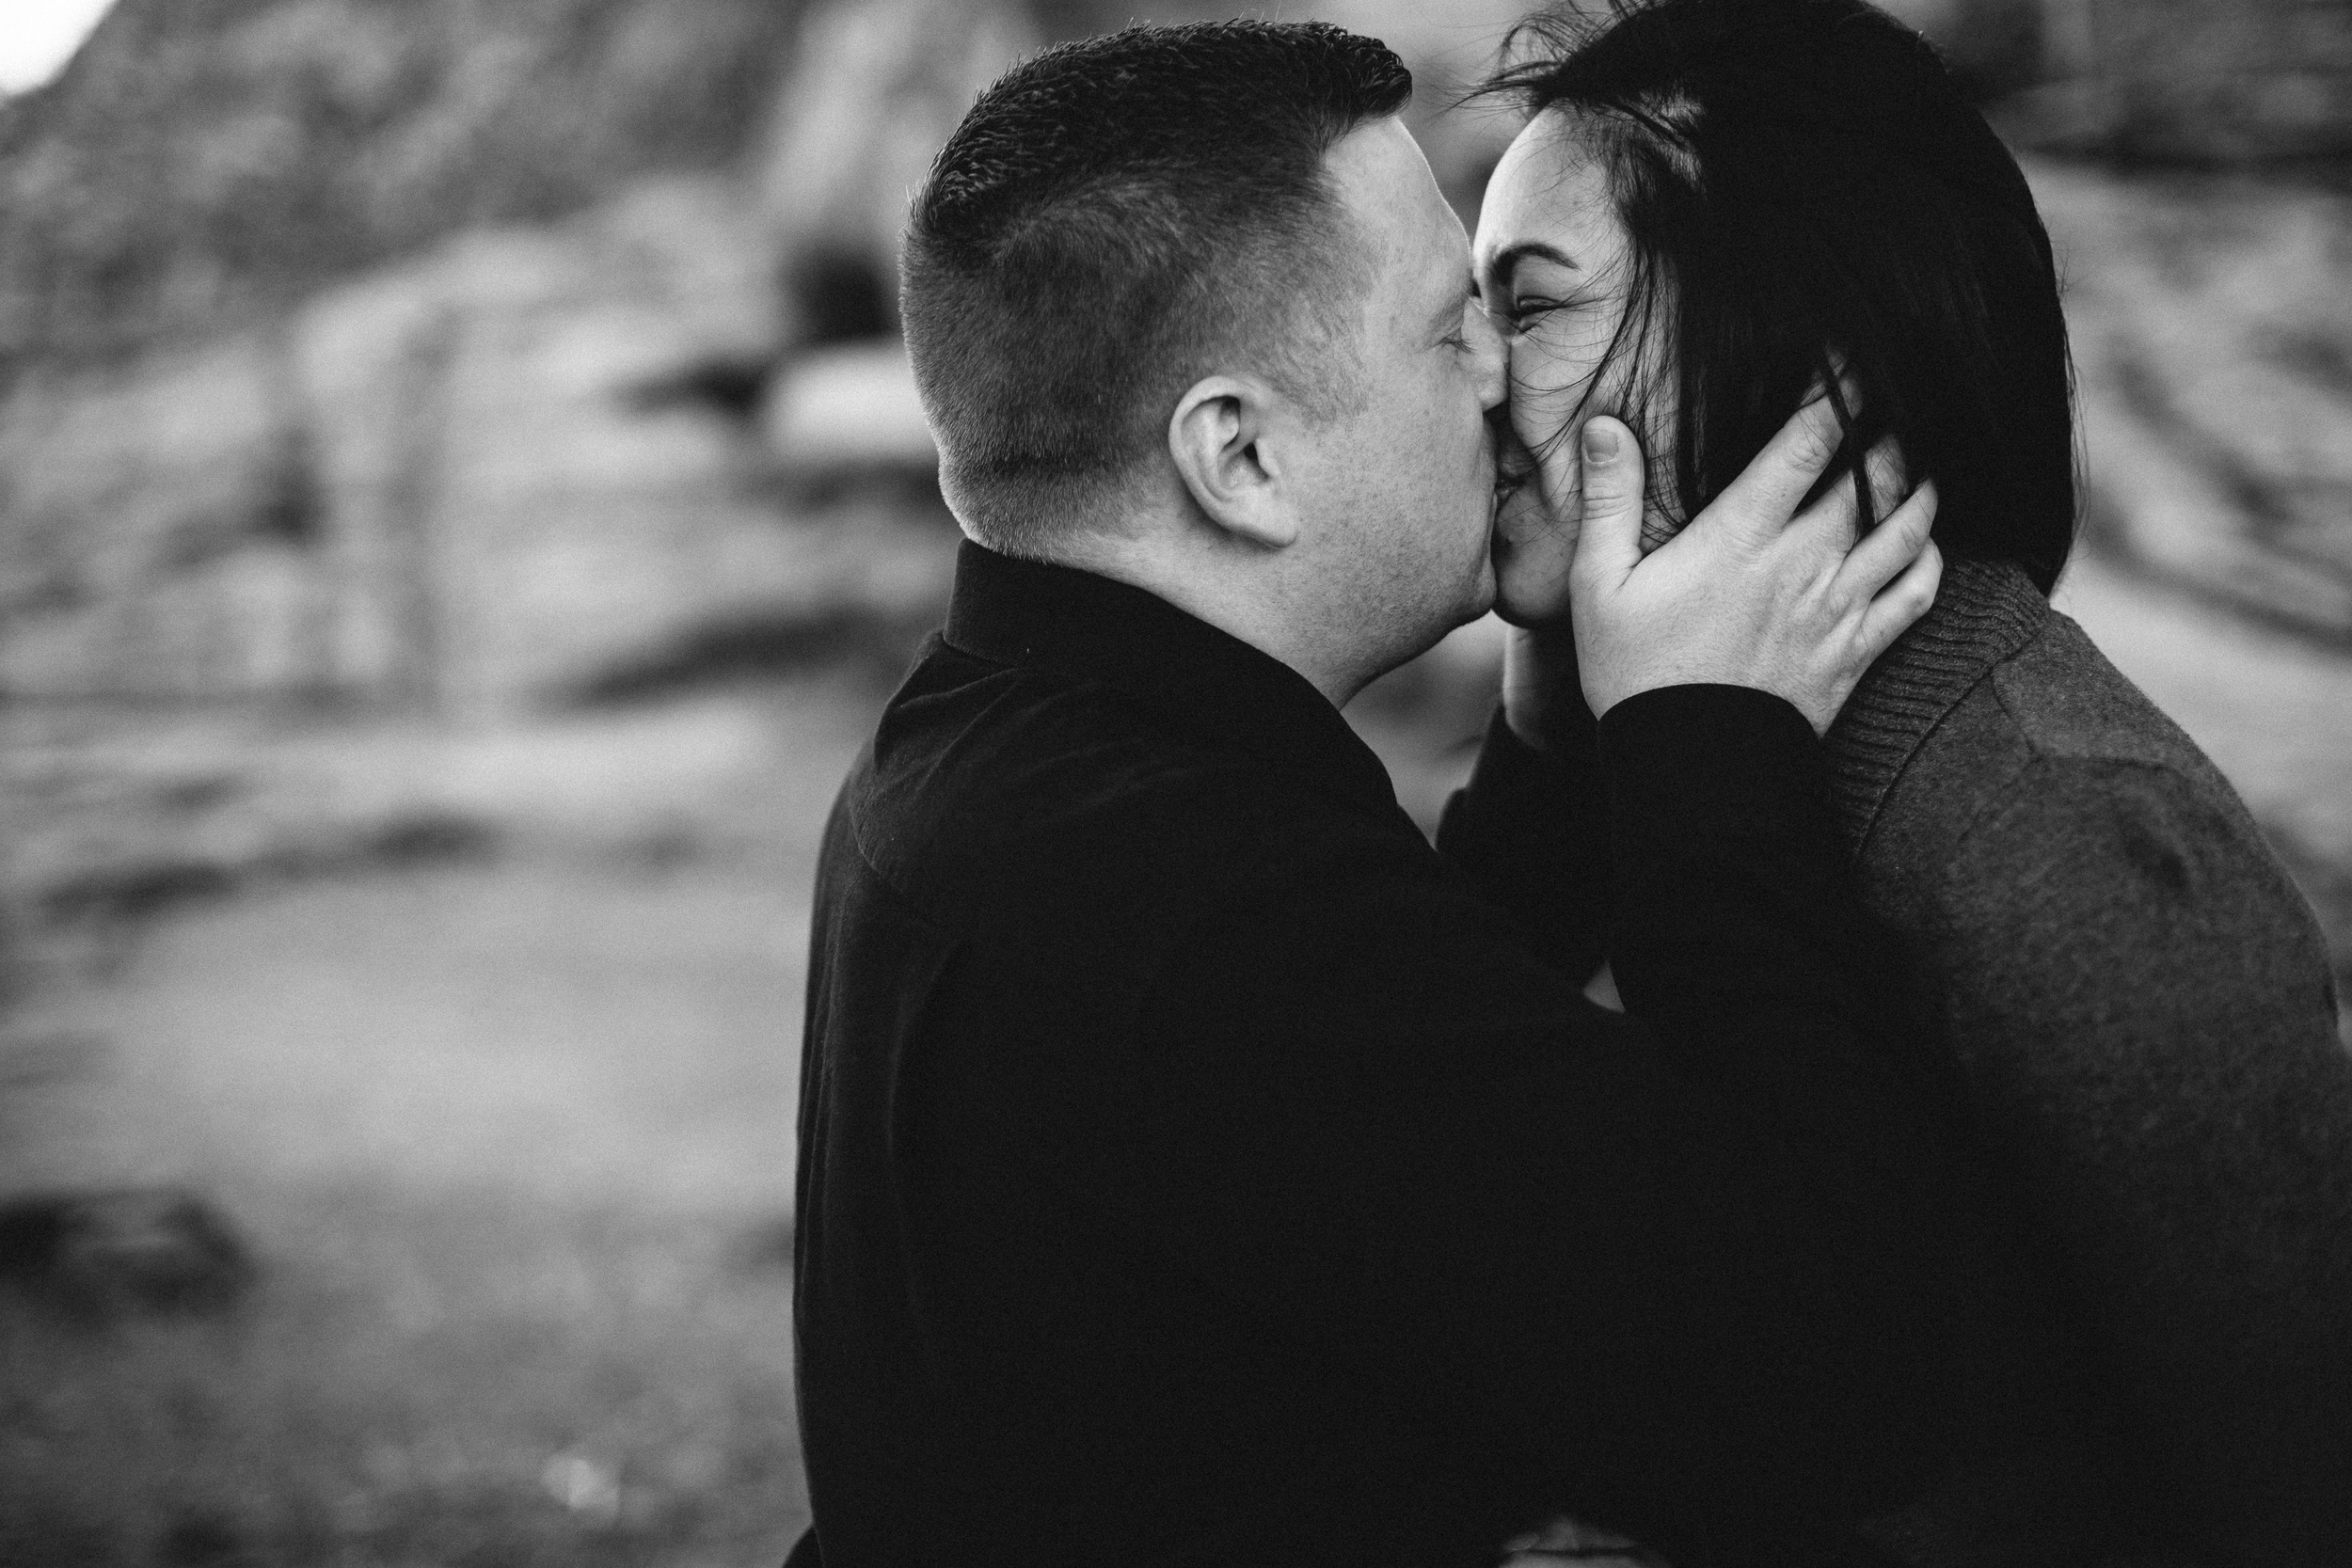 Clint & Veronica's Proposal - Corrie Mick Photography-56.jpg